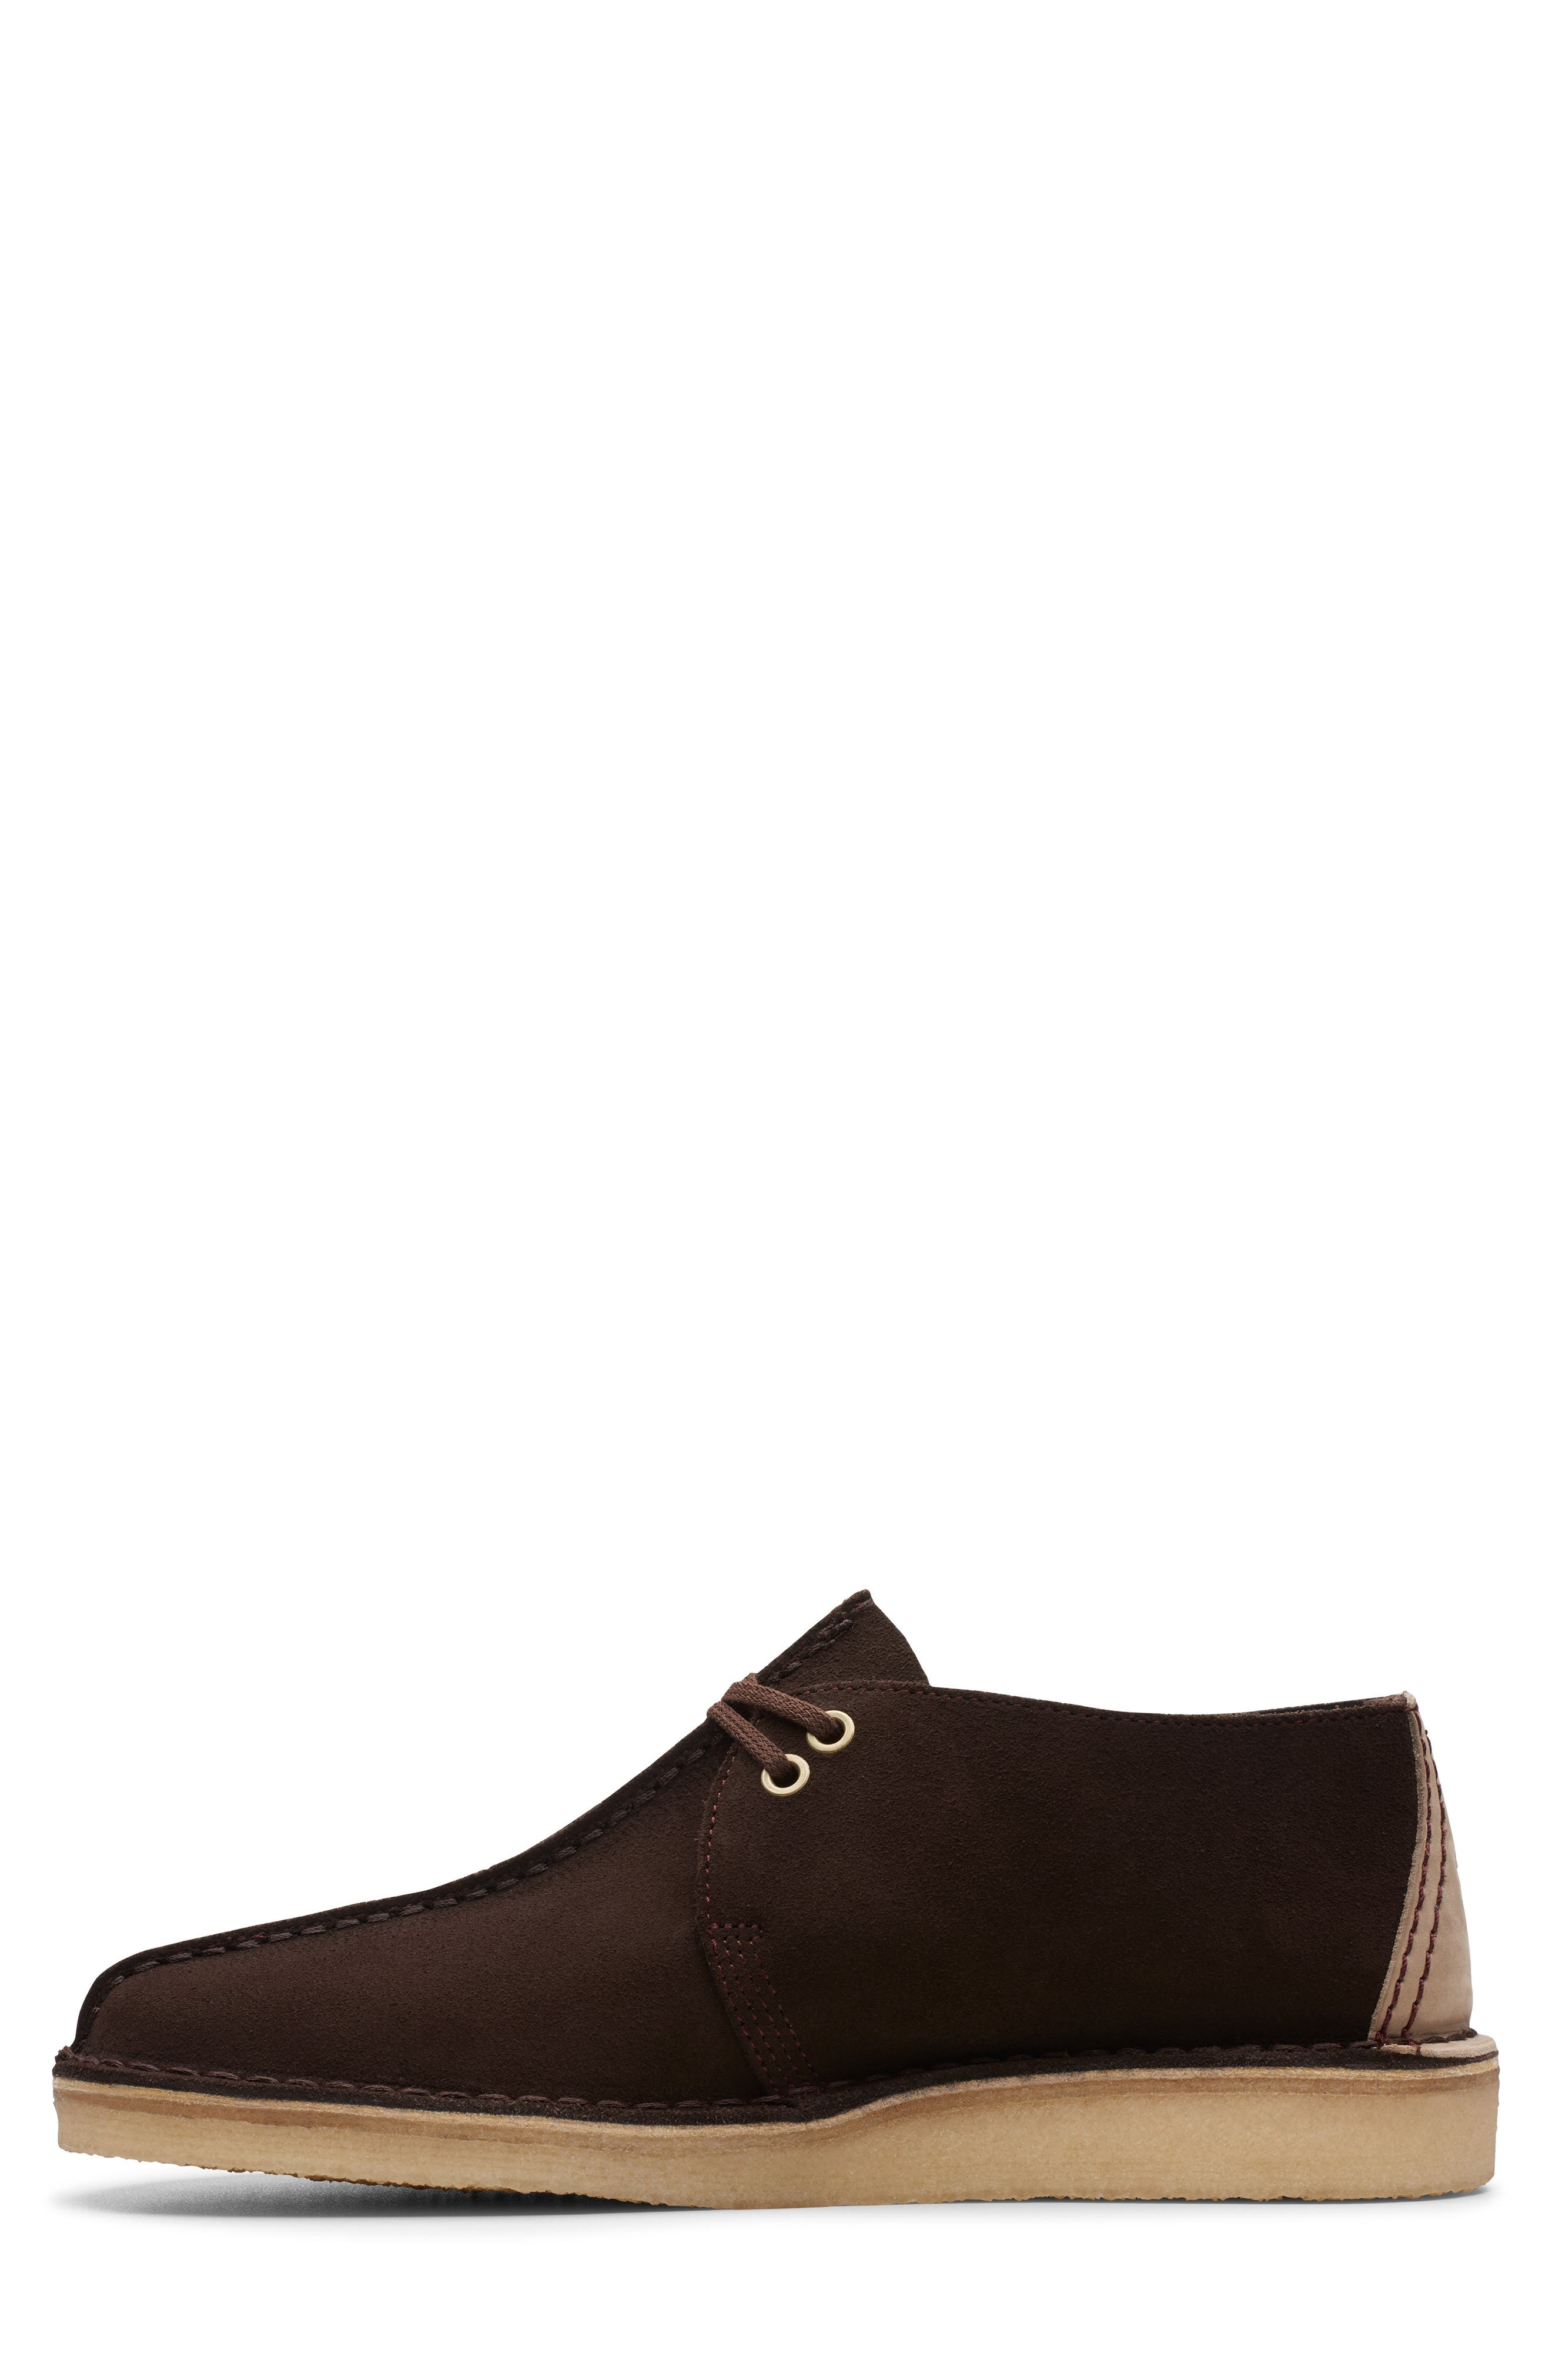 CLARKS<SUP>®</SUP>, Desert Trek Chukka Boot, Alternate thumbnail 7, color, DARK BROWN SUEDE